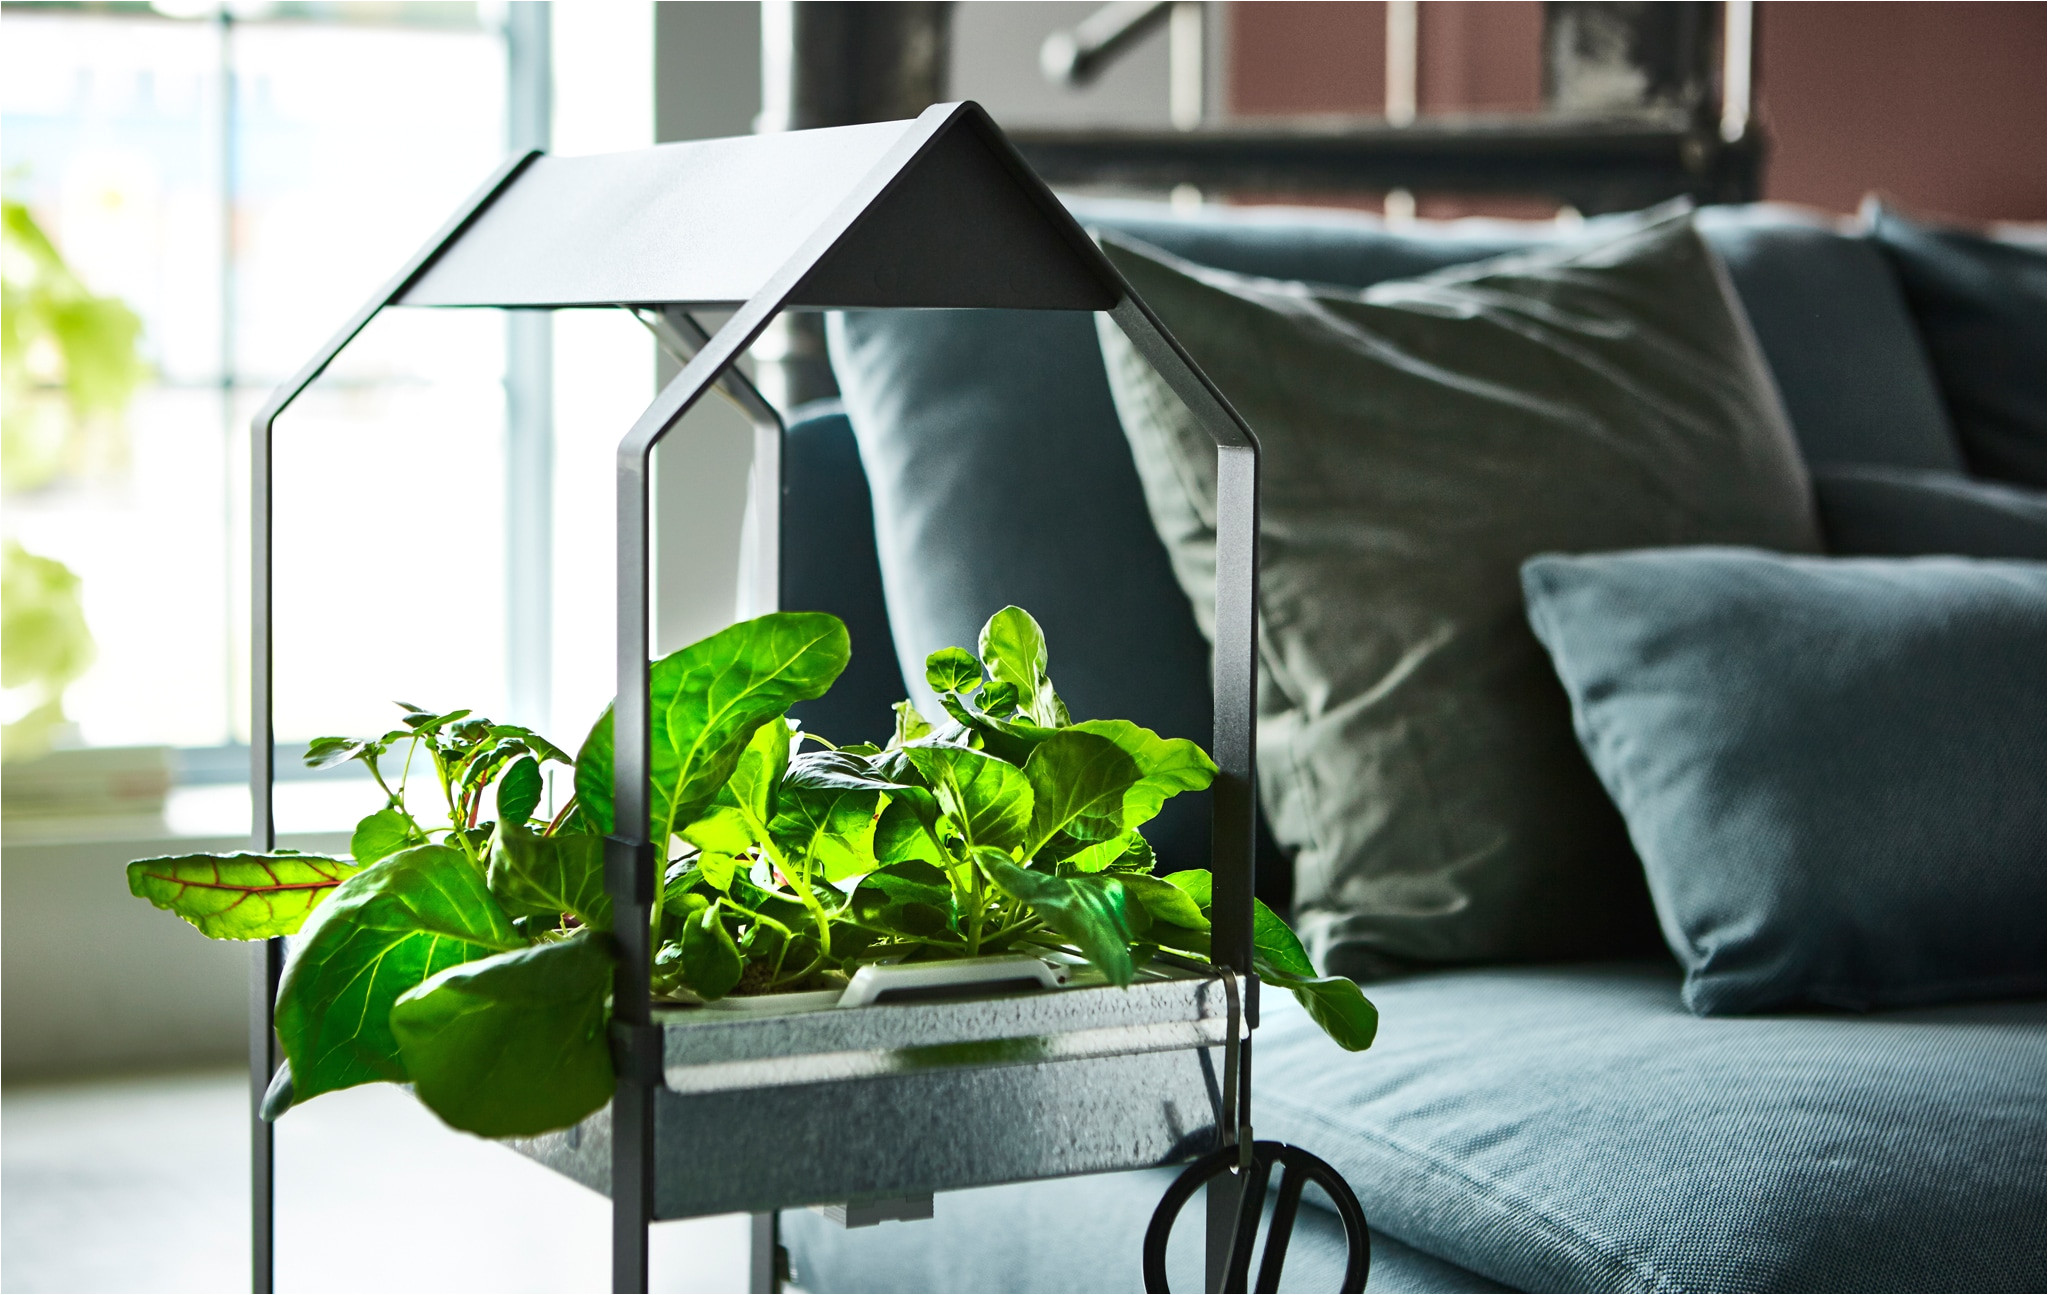 a plant stand filled with herbs and greens sits in a living room next to a